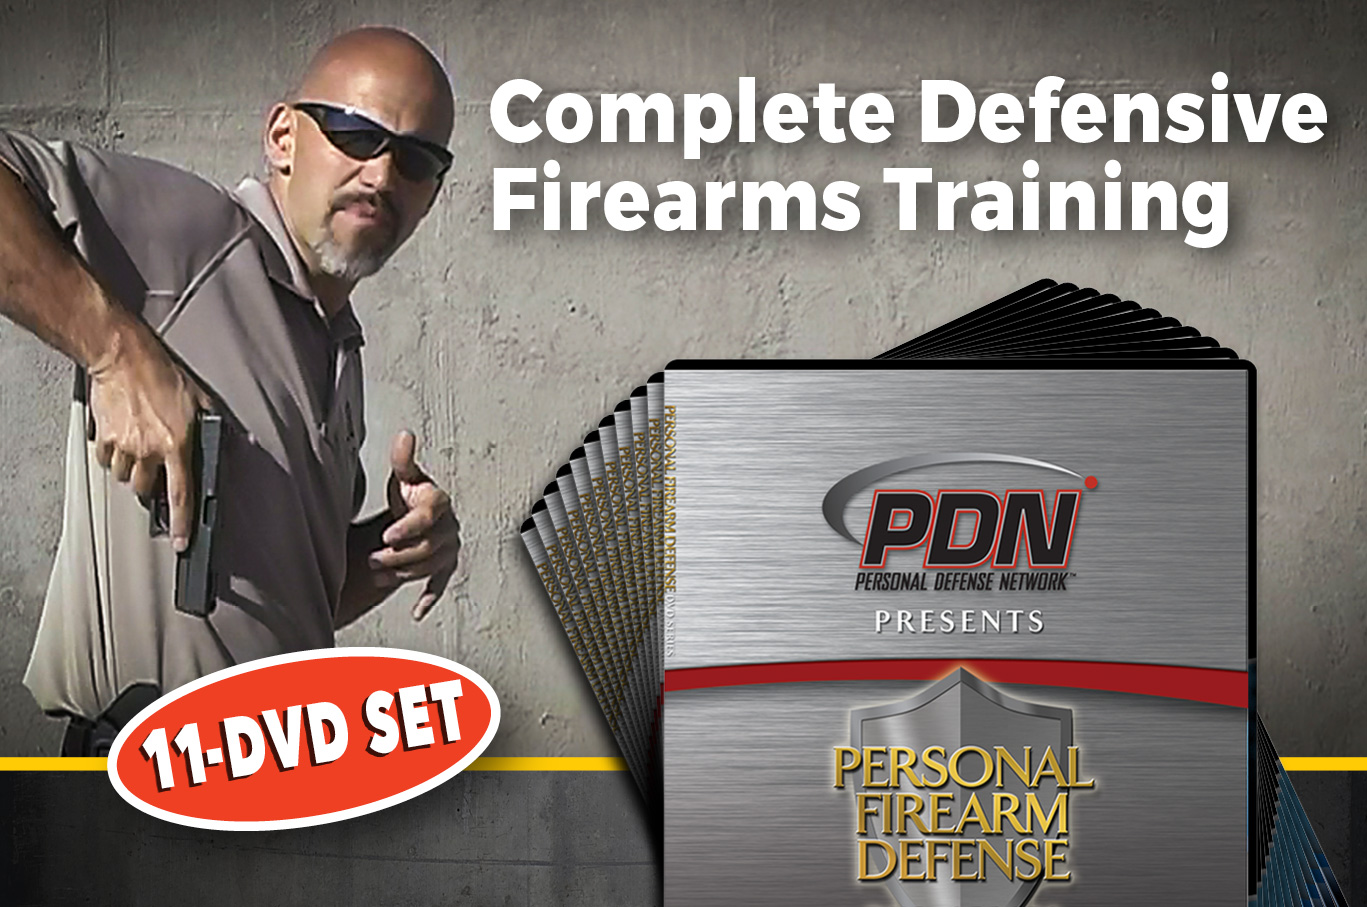 Personal defense network 11 DVD giveaway promo